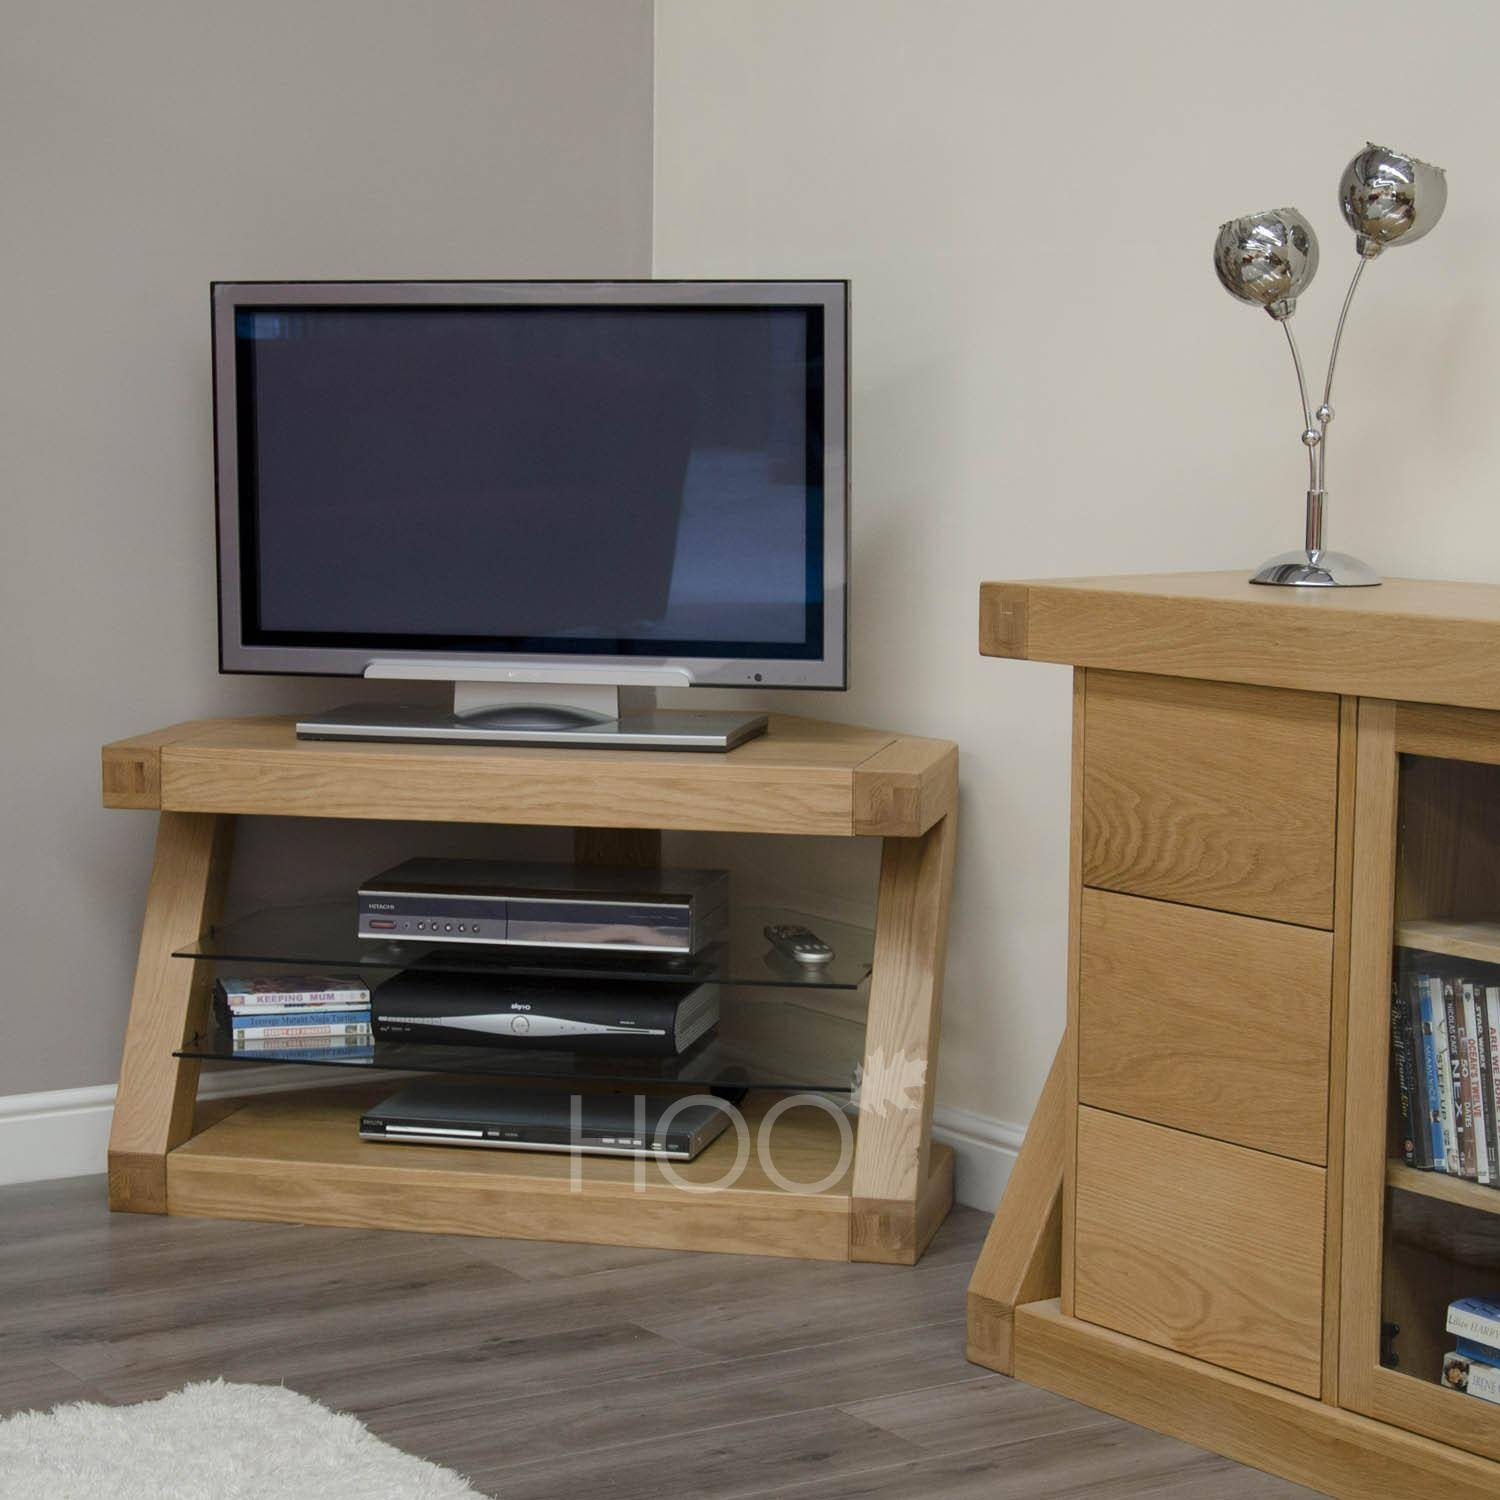 Z Oak Corner Tv Cabinet – Oak Furniturehouse Of Oak Throughout Tv Cabinets Corner Units (View 8 of 15)